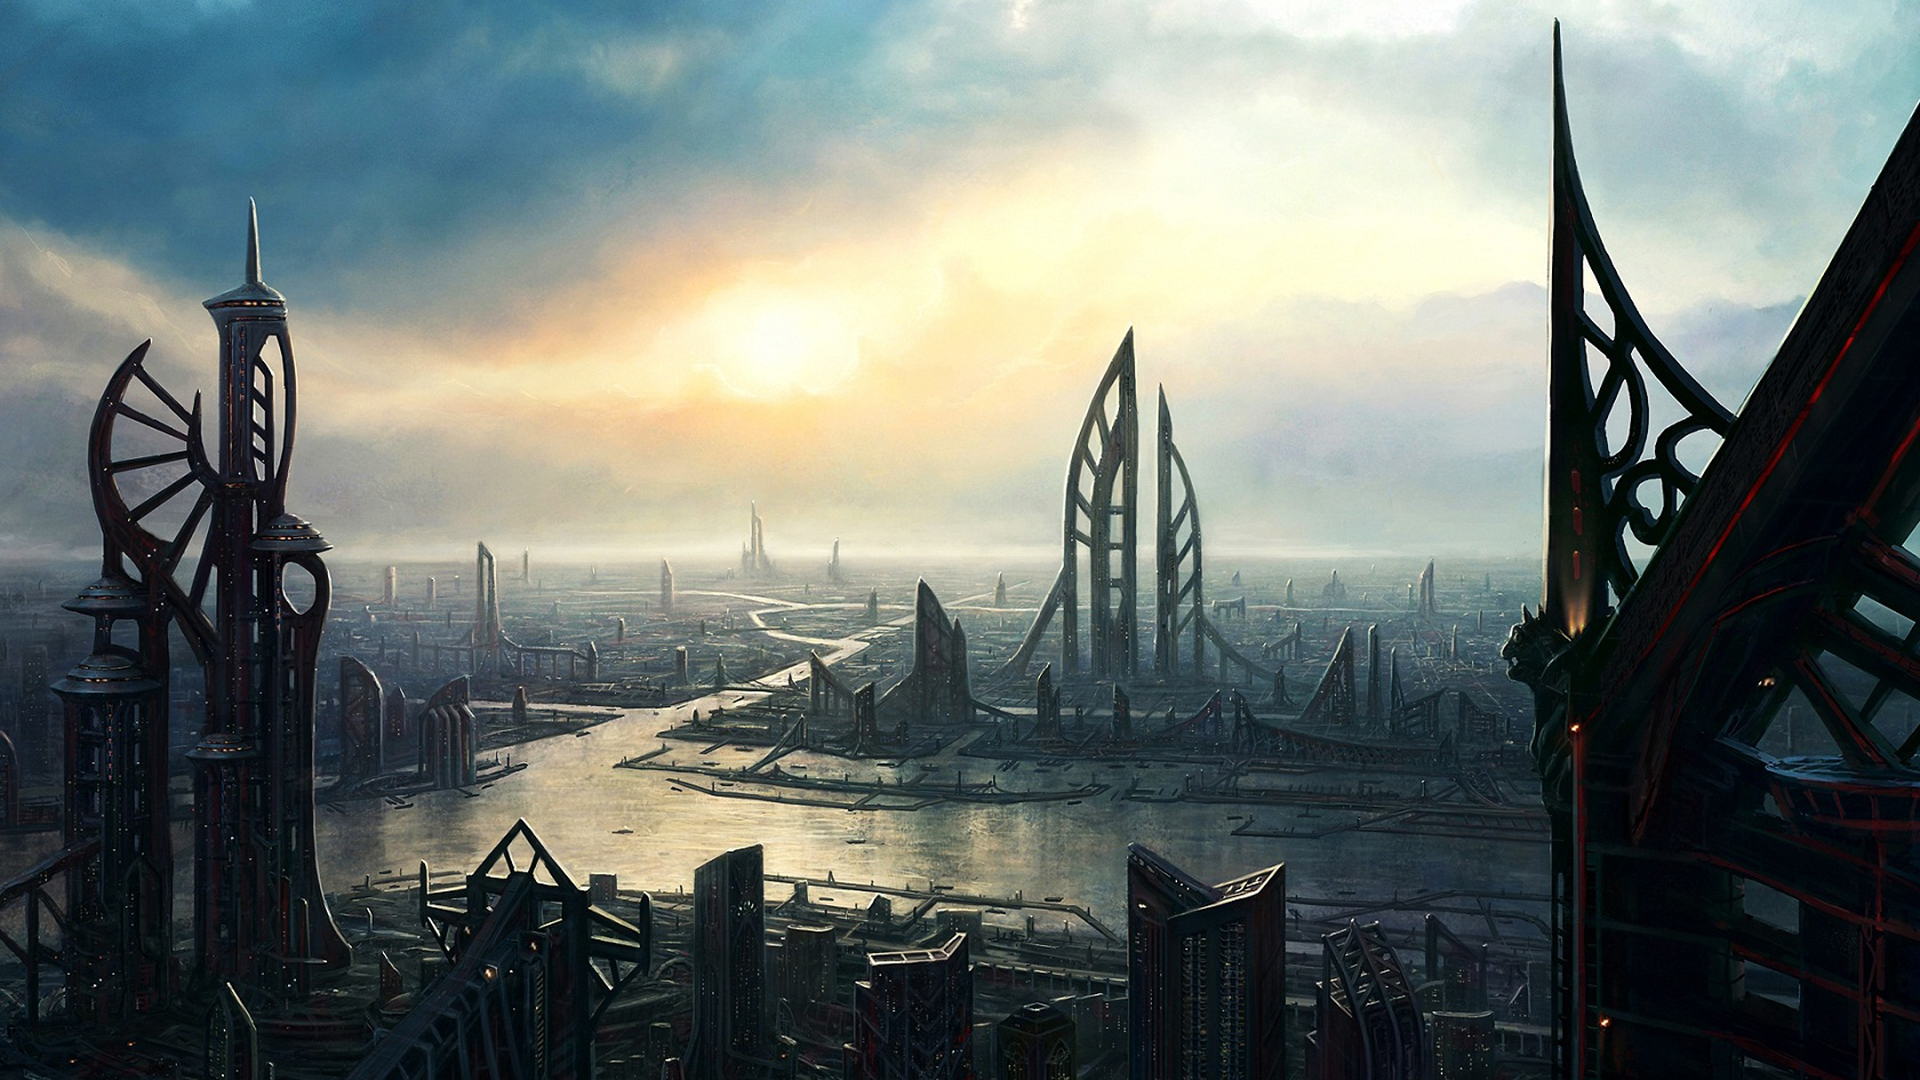 Fantasy City Wallpaper Hd: Fantasy Wallpapers